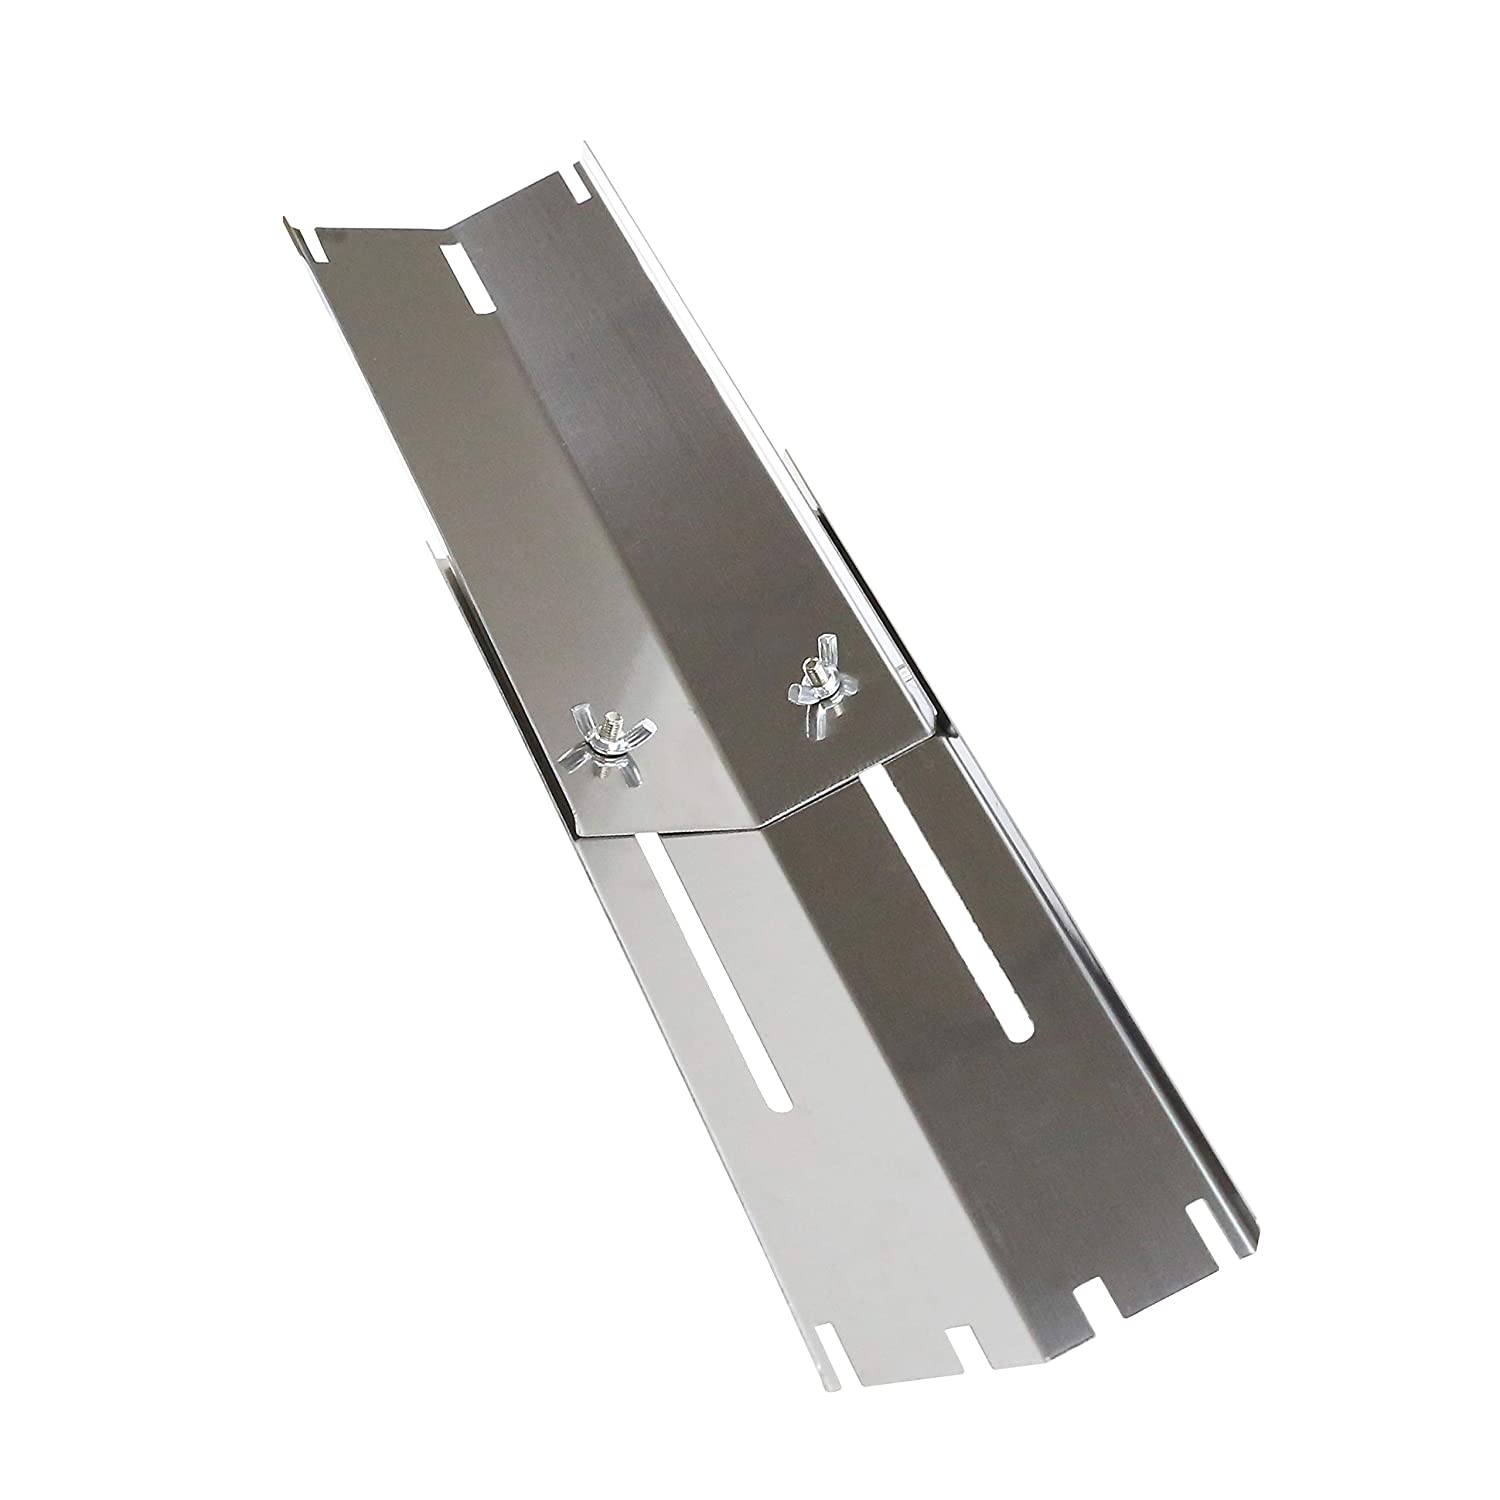 810-2511-S Heat Plates /& Crossover Tubes Replacement Parts for Brinkmann 5 Burner Grill Models 810-3660-S 810-4580-S 810-1750-S Hisencn Stainless Steel Adjustable Grill Burners